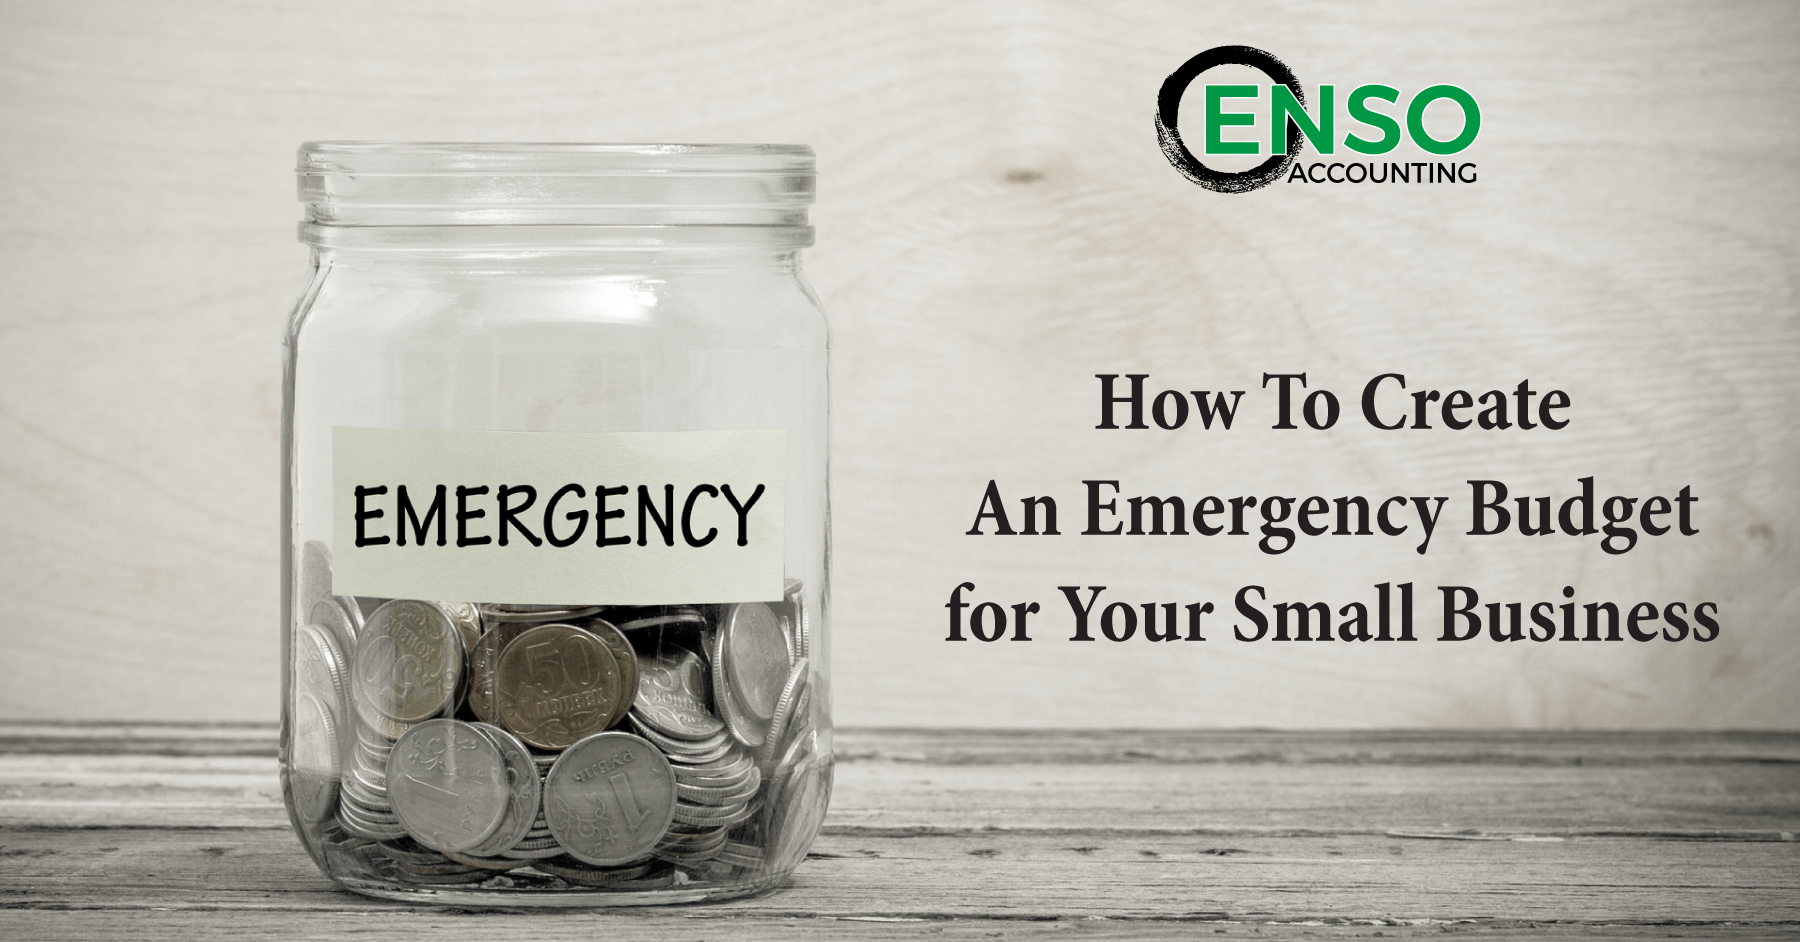 How To Create An Emergency Budget for Your Small Business